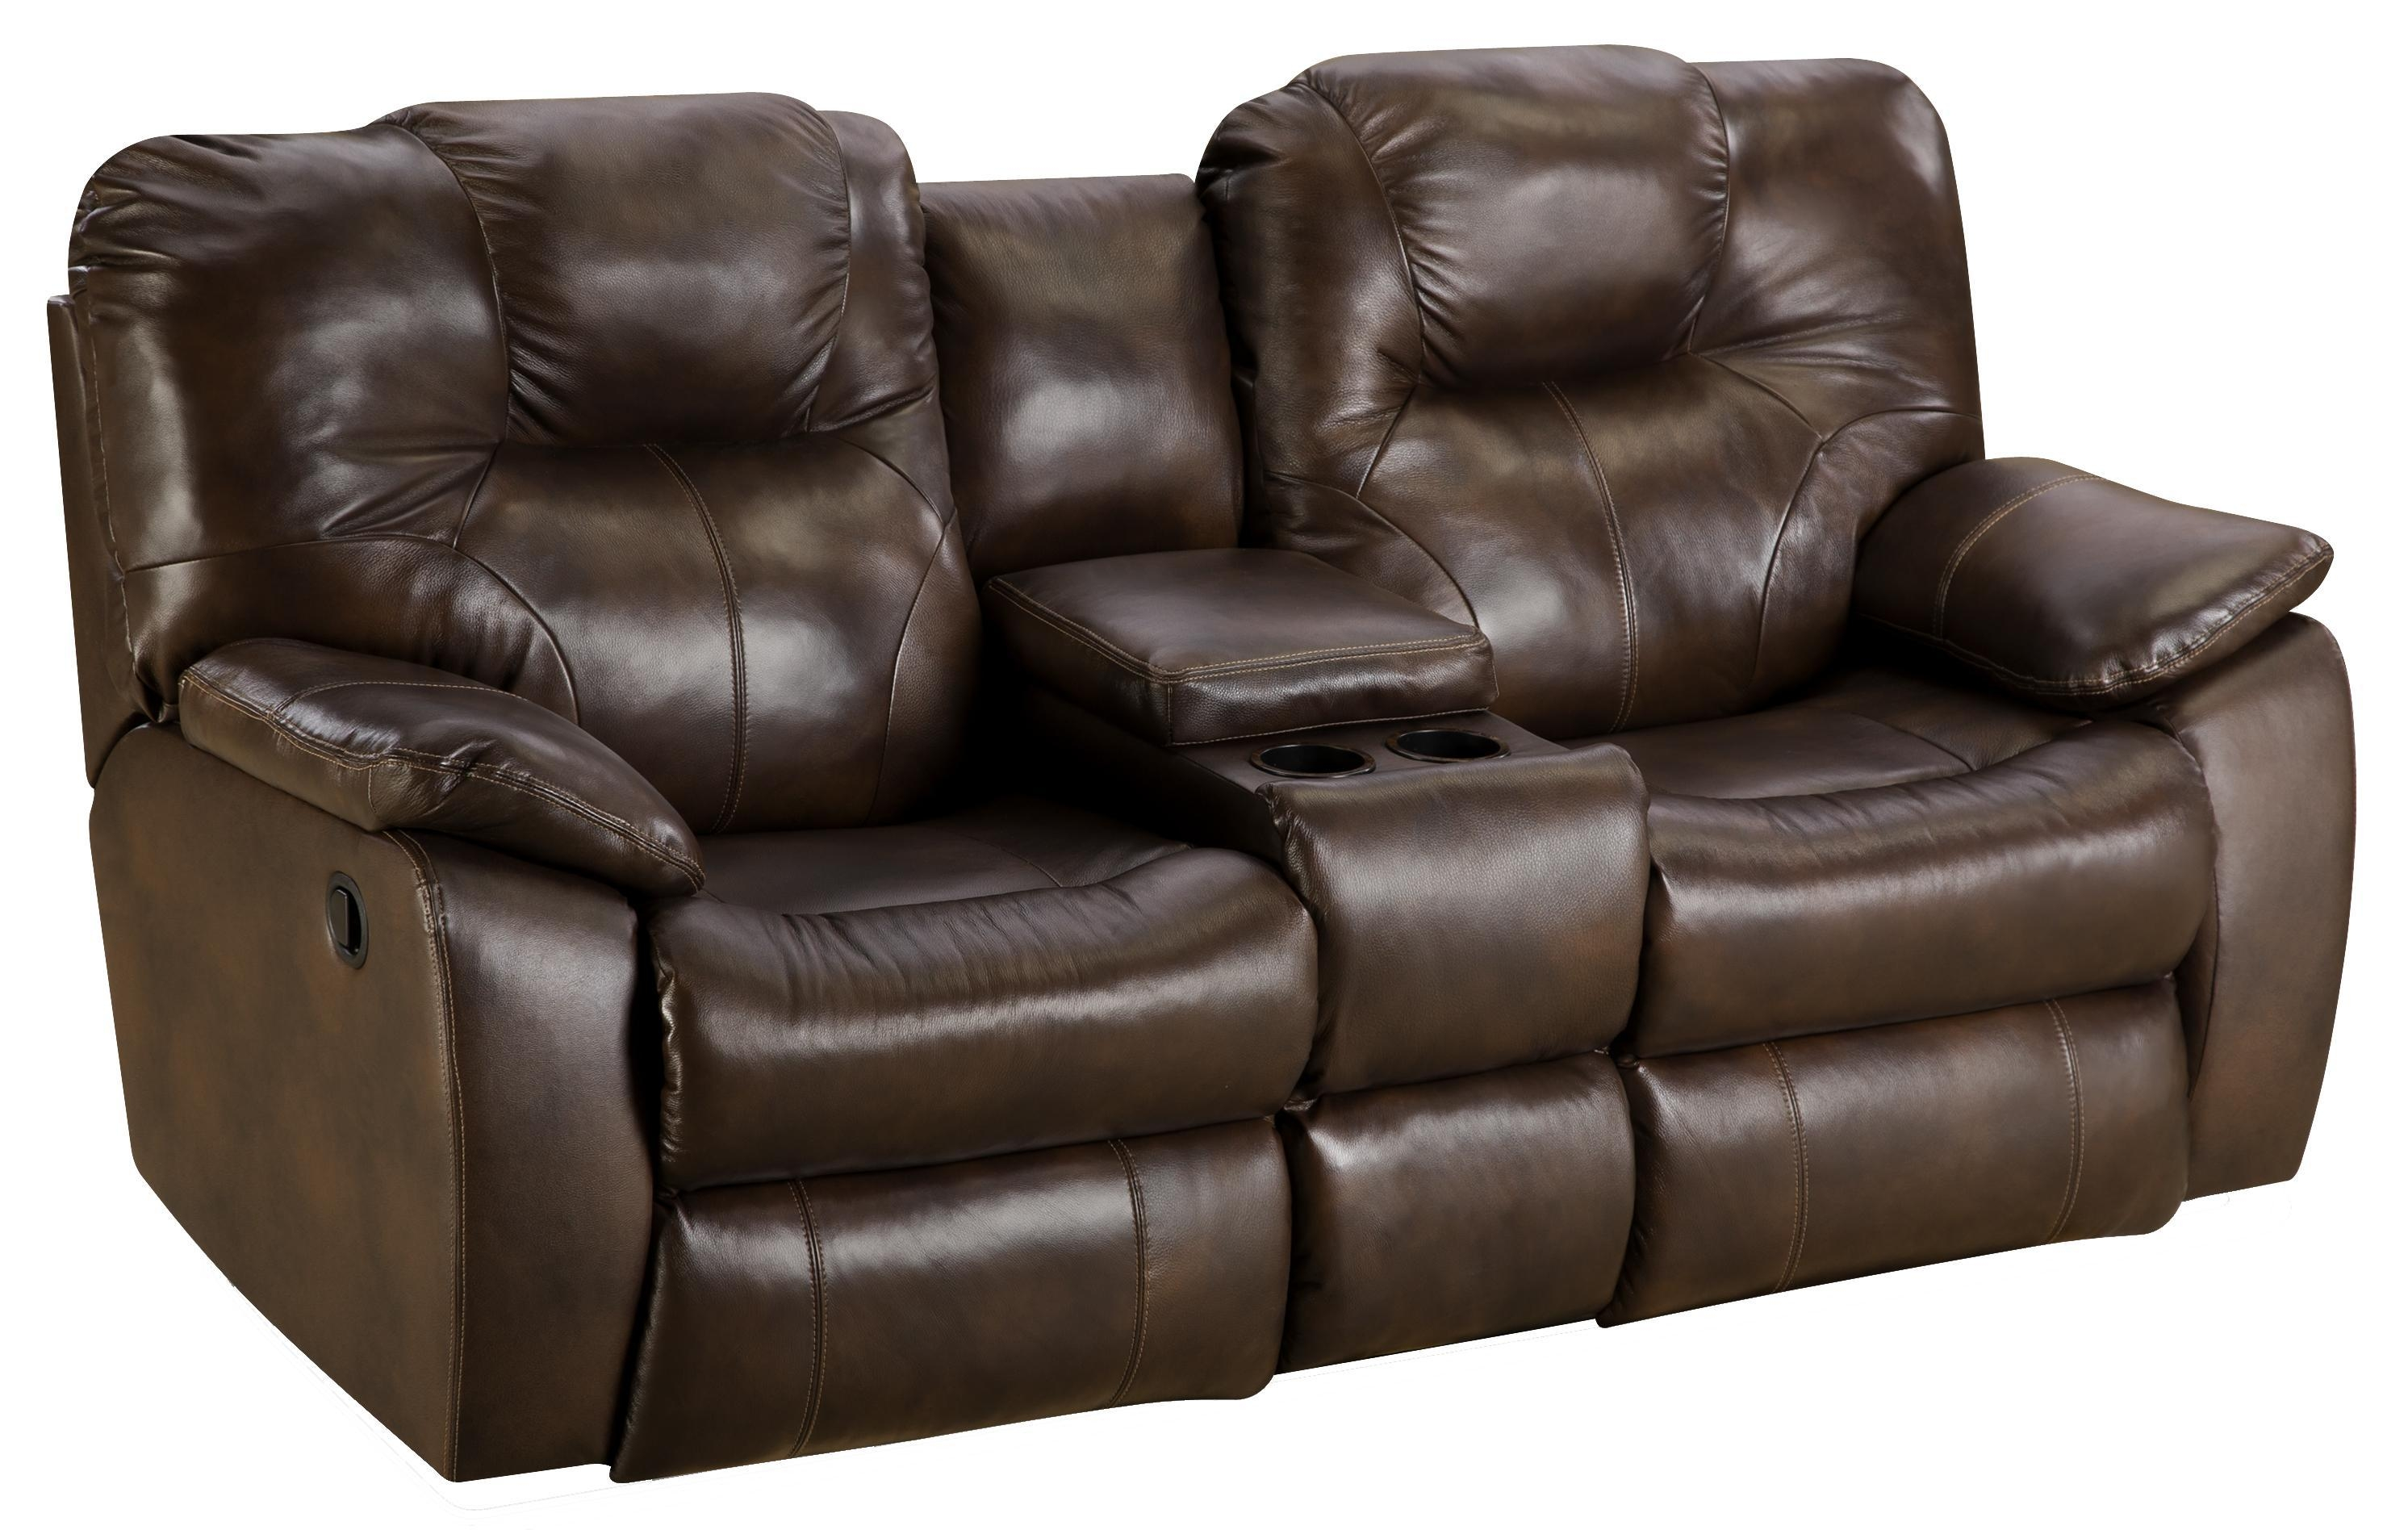 Double Recliner Sofa With Console Leather Cleaner Steam Clean Pertaining To Sofas With Console (Image 3 of 20)